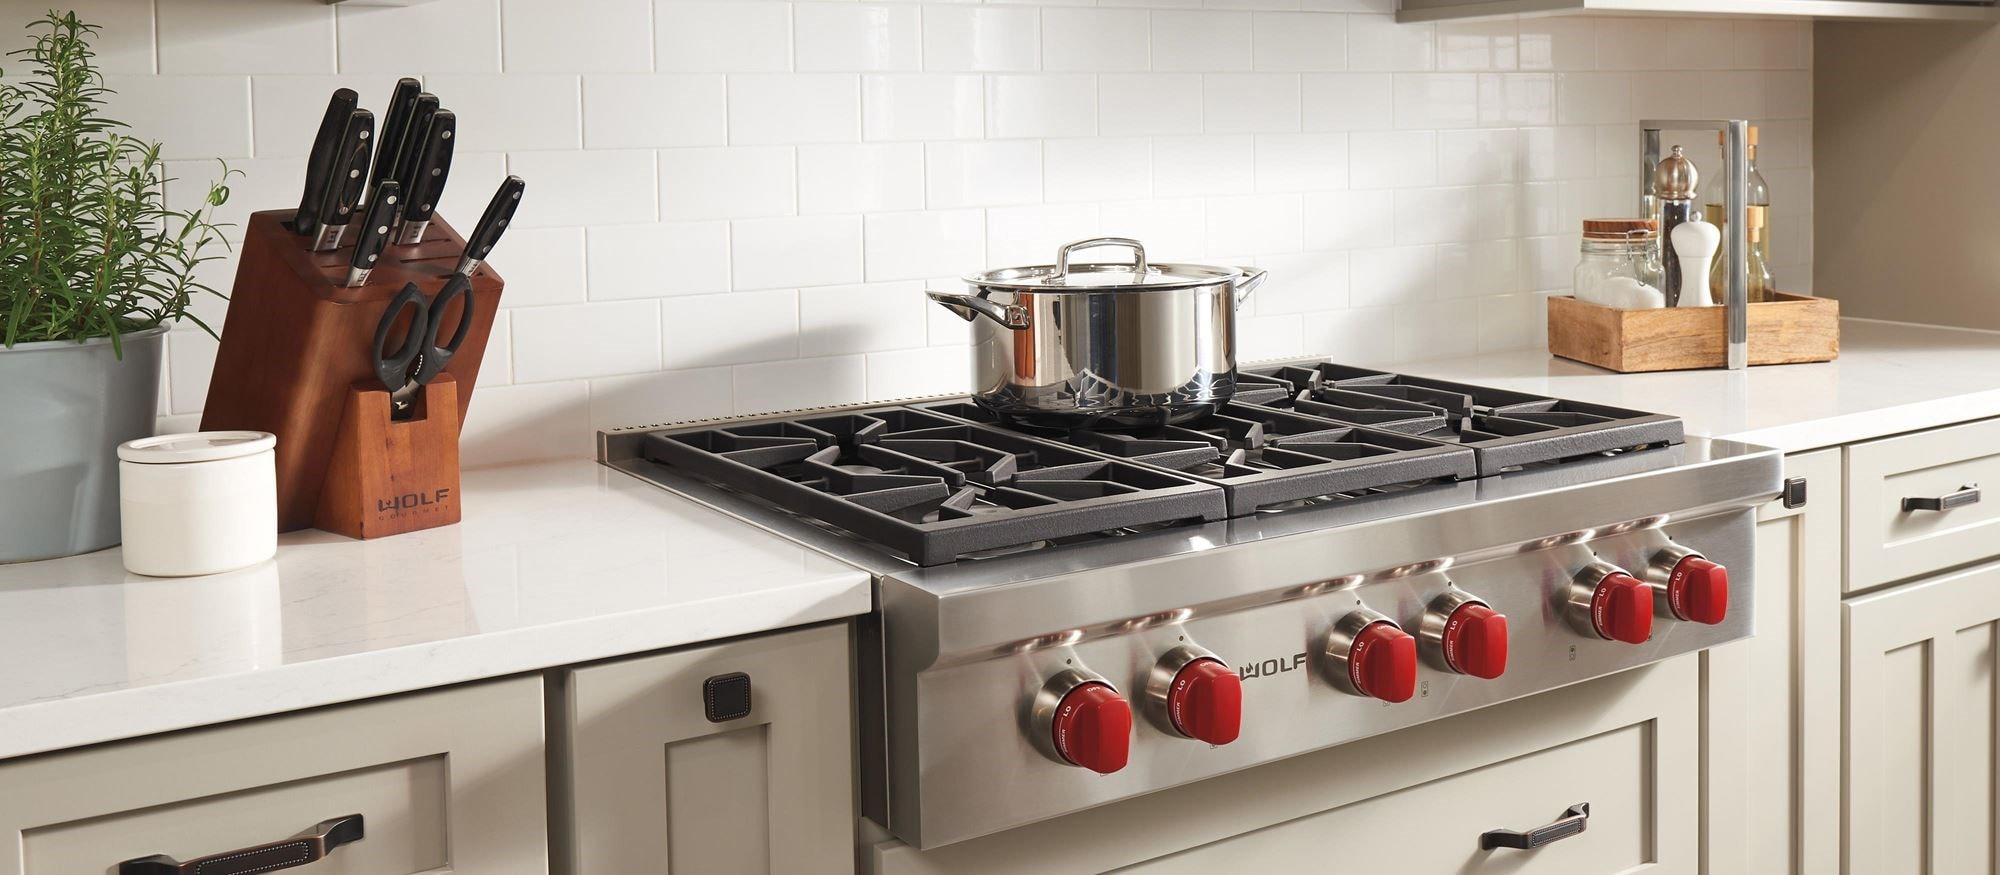 Sealed Burner Rangetop 6 Burners